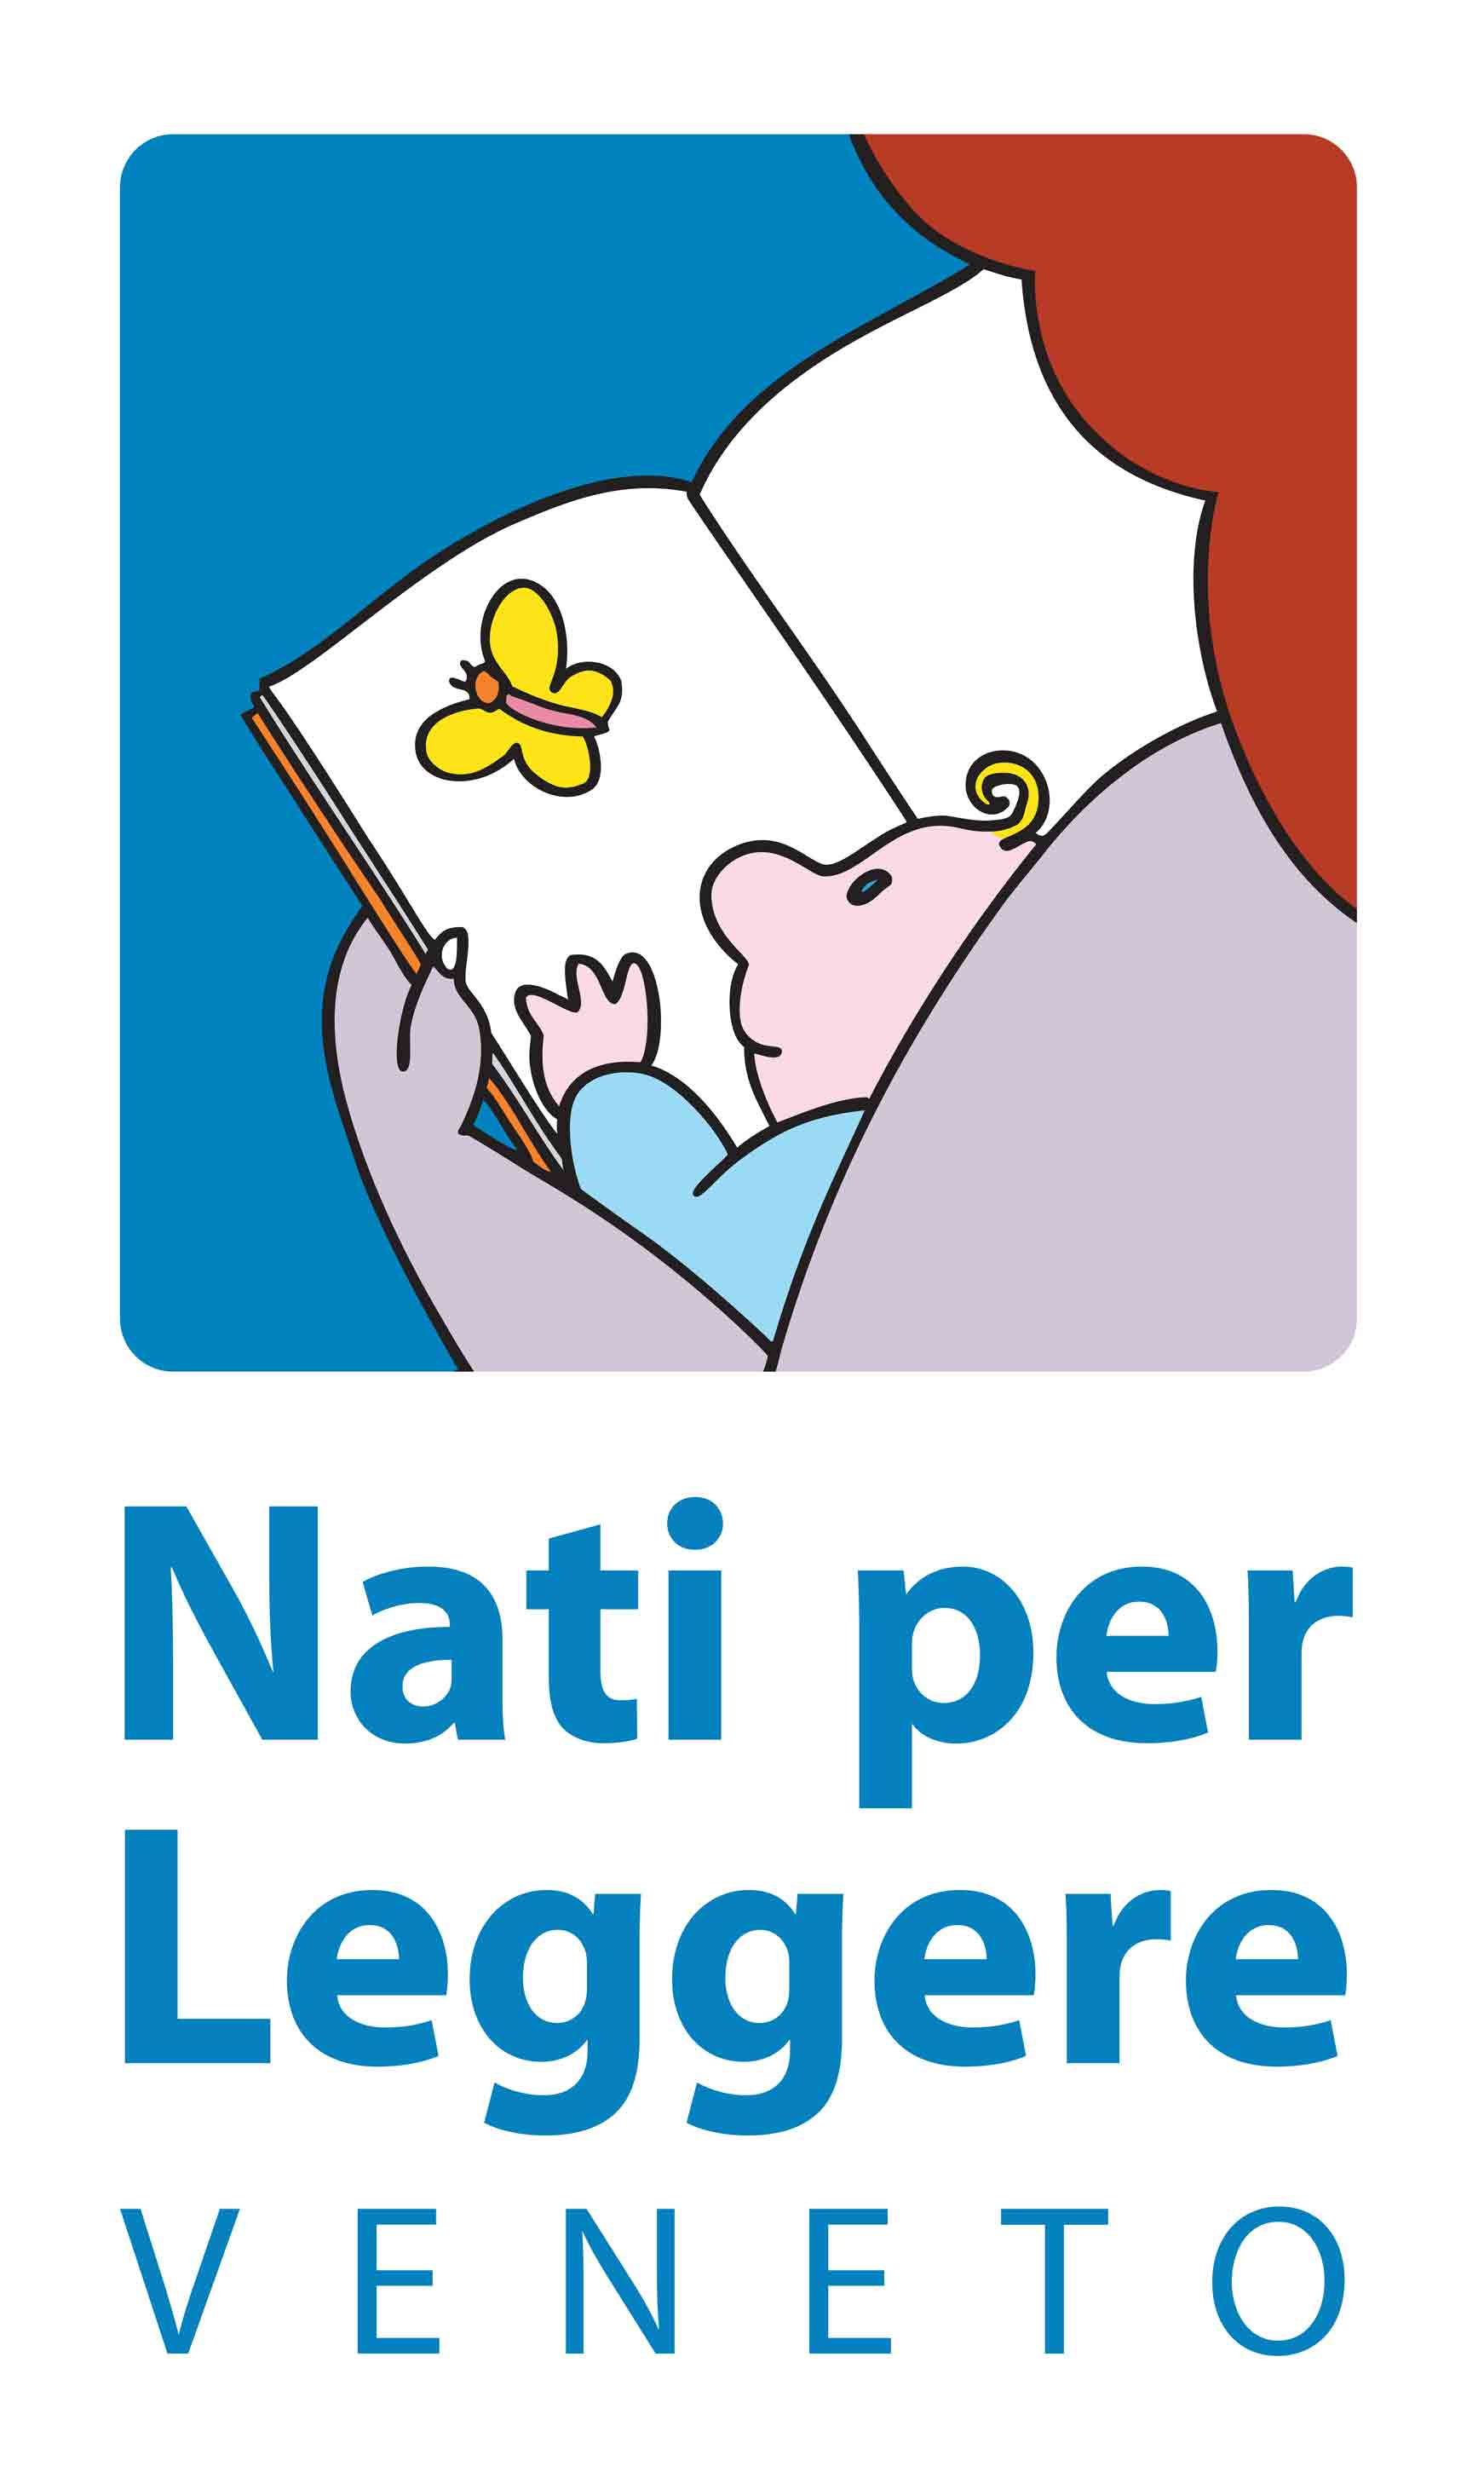 Nati per leggere Veneto